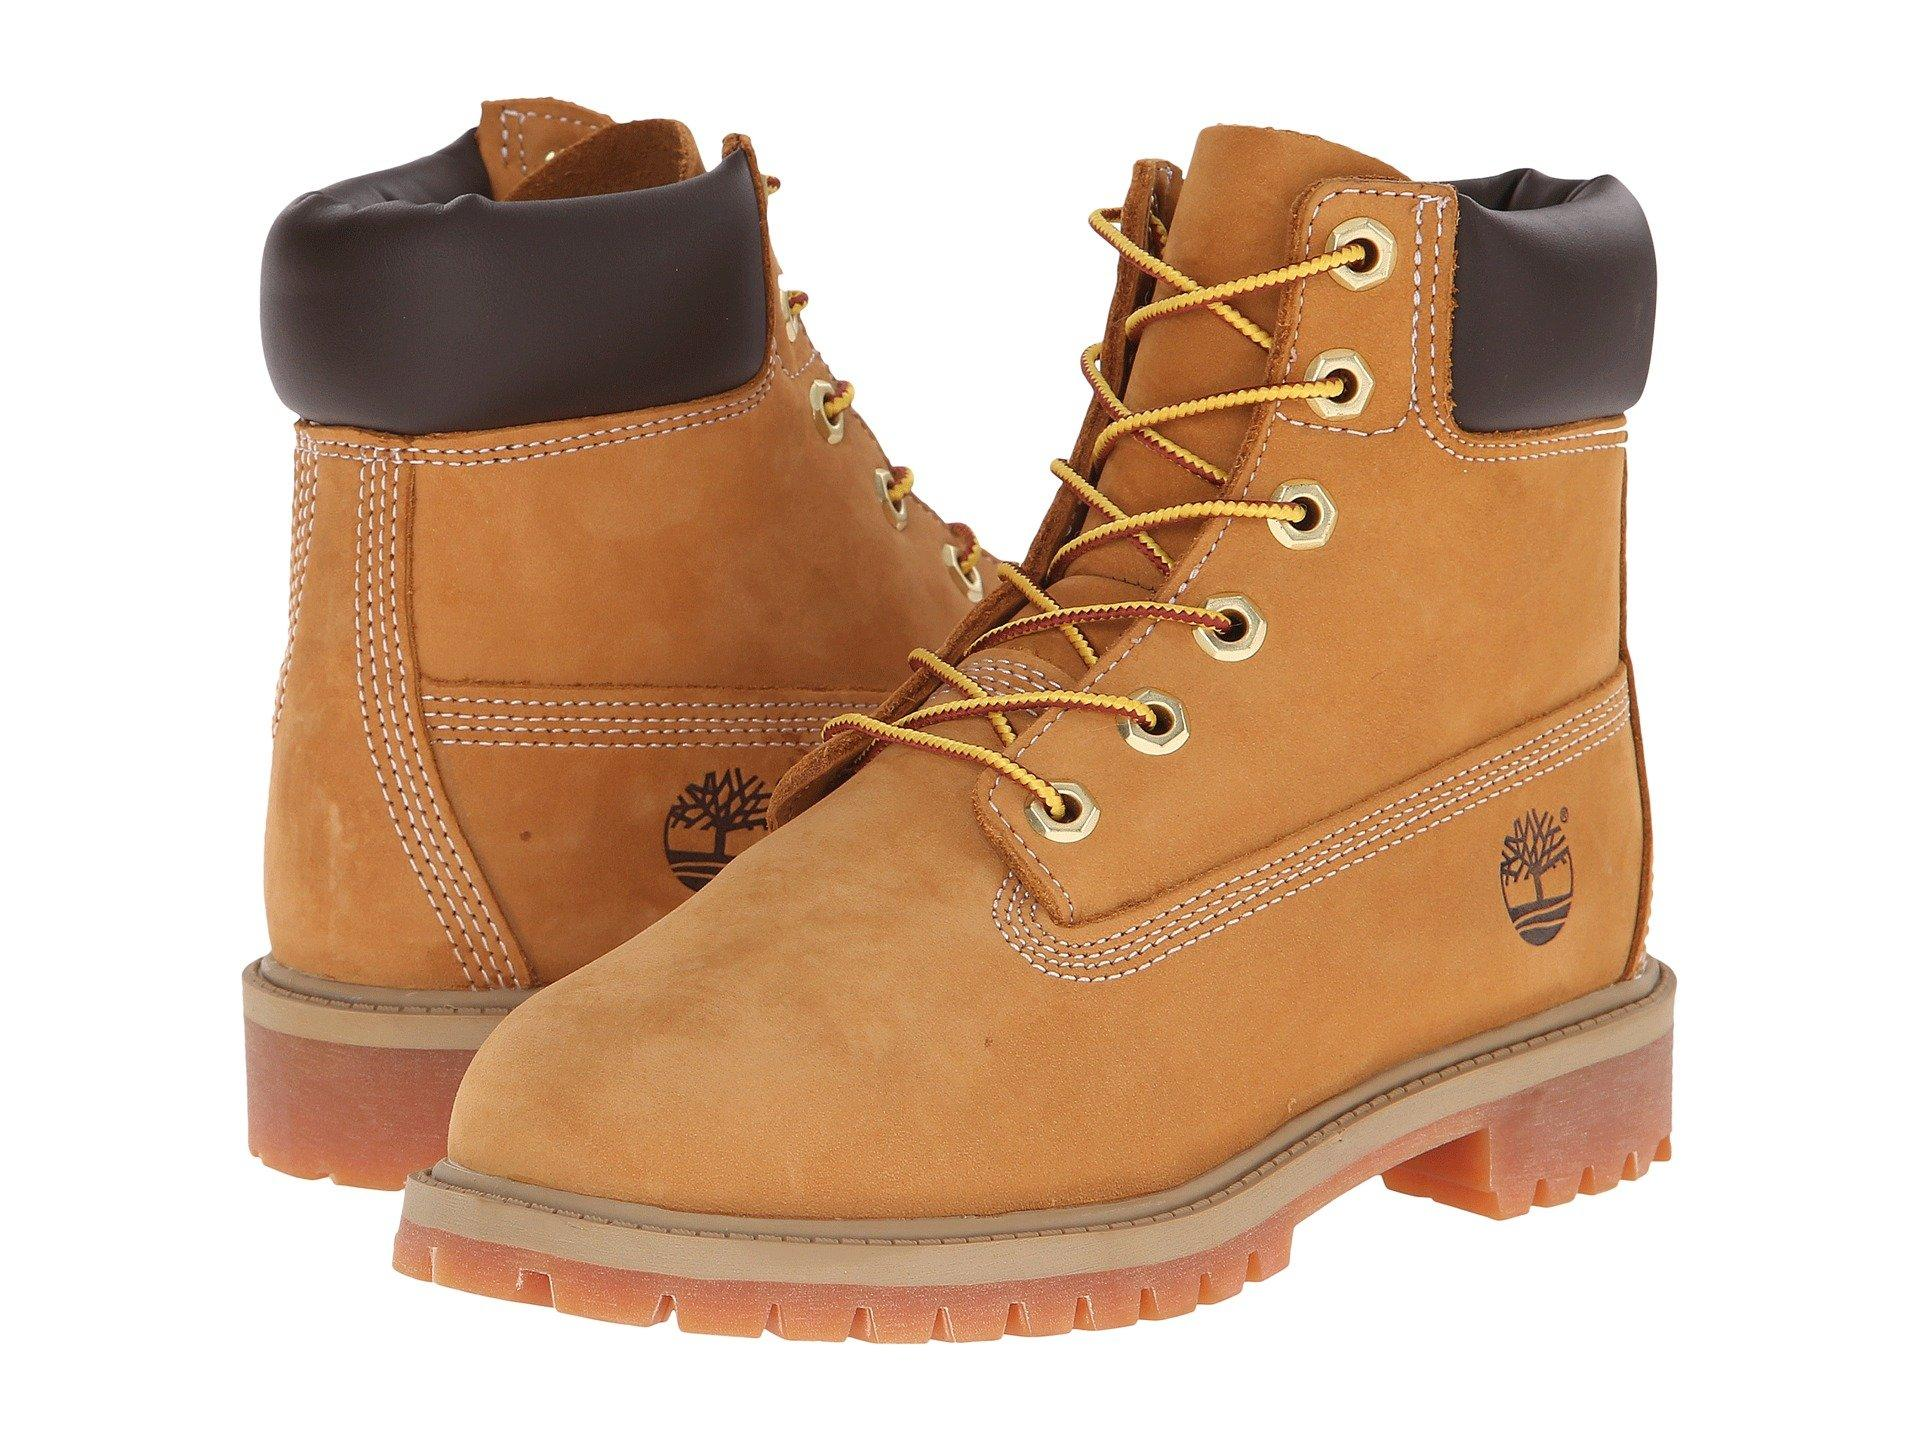 Timberland Boots   Shoes  a5138b598c81